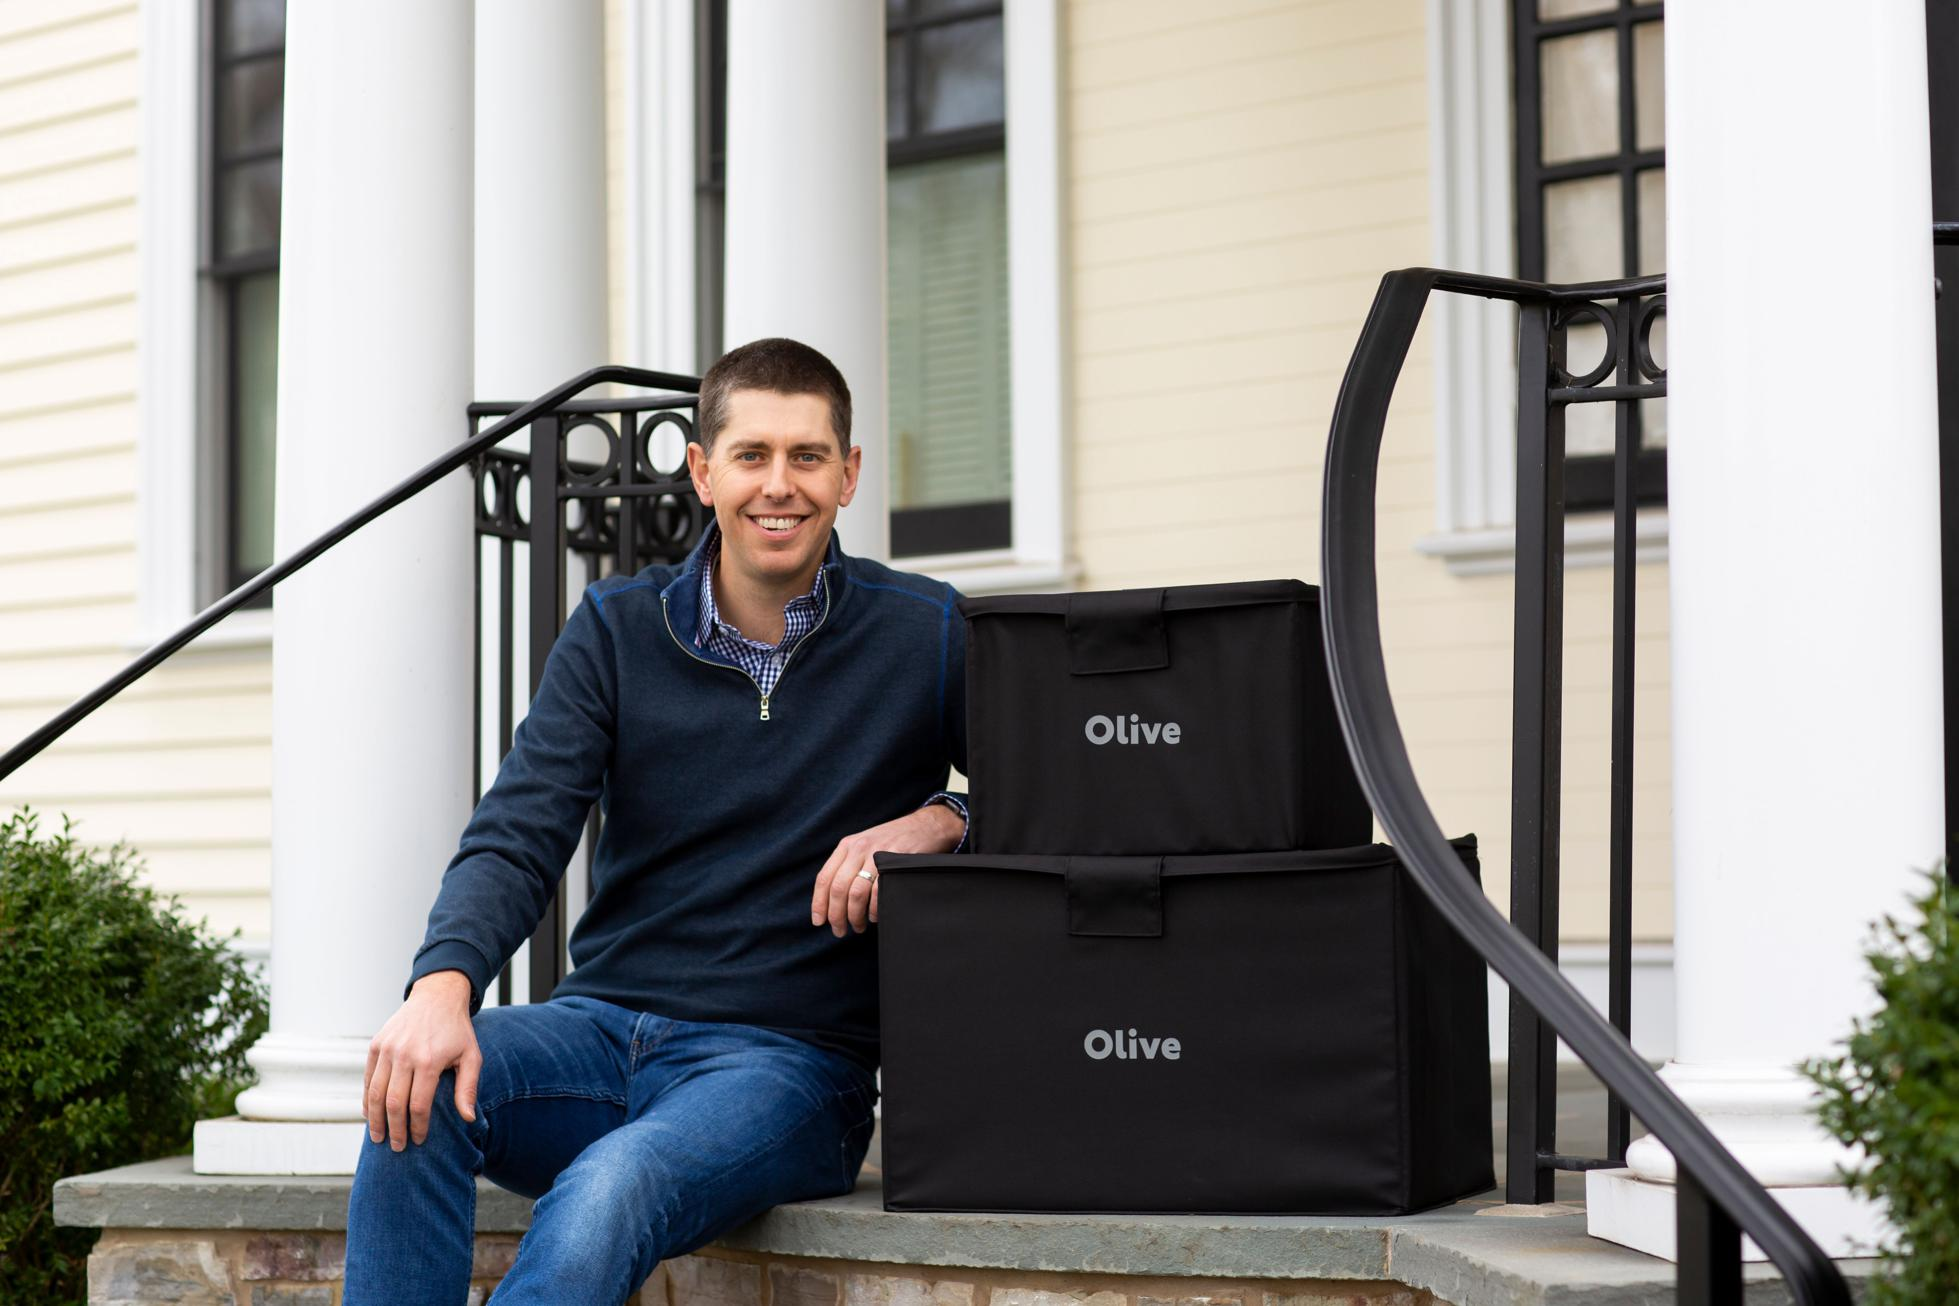 Nate Faust, who cofounded Jet and then helped Walmart build its e-commerce operation, is launching a new company that will work with brands and retailers to ship items in reusable totes.